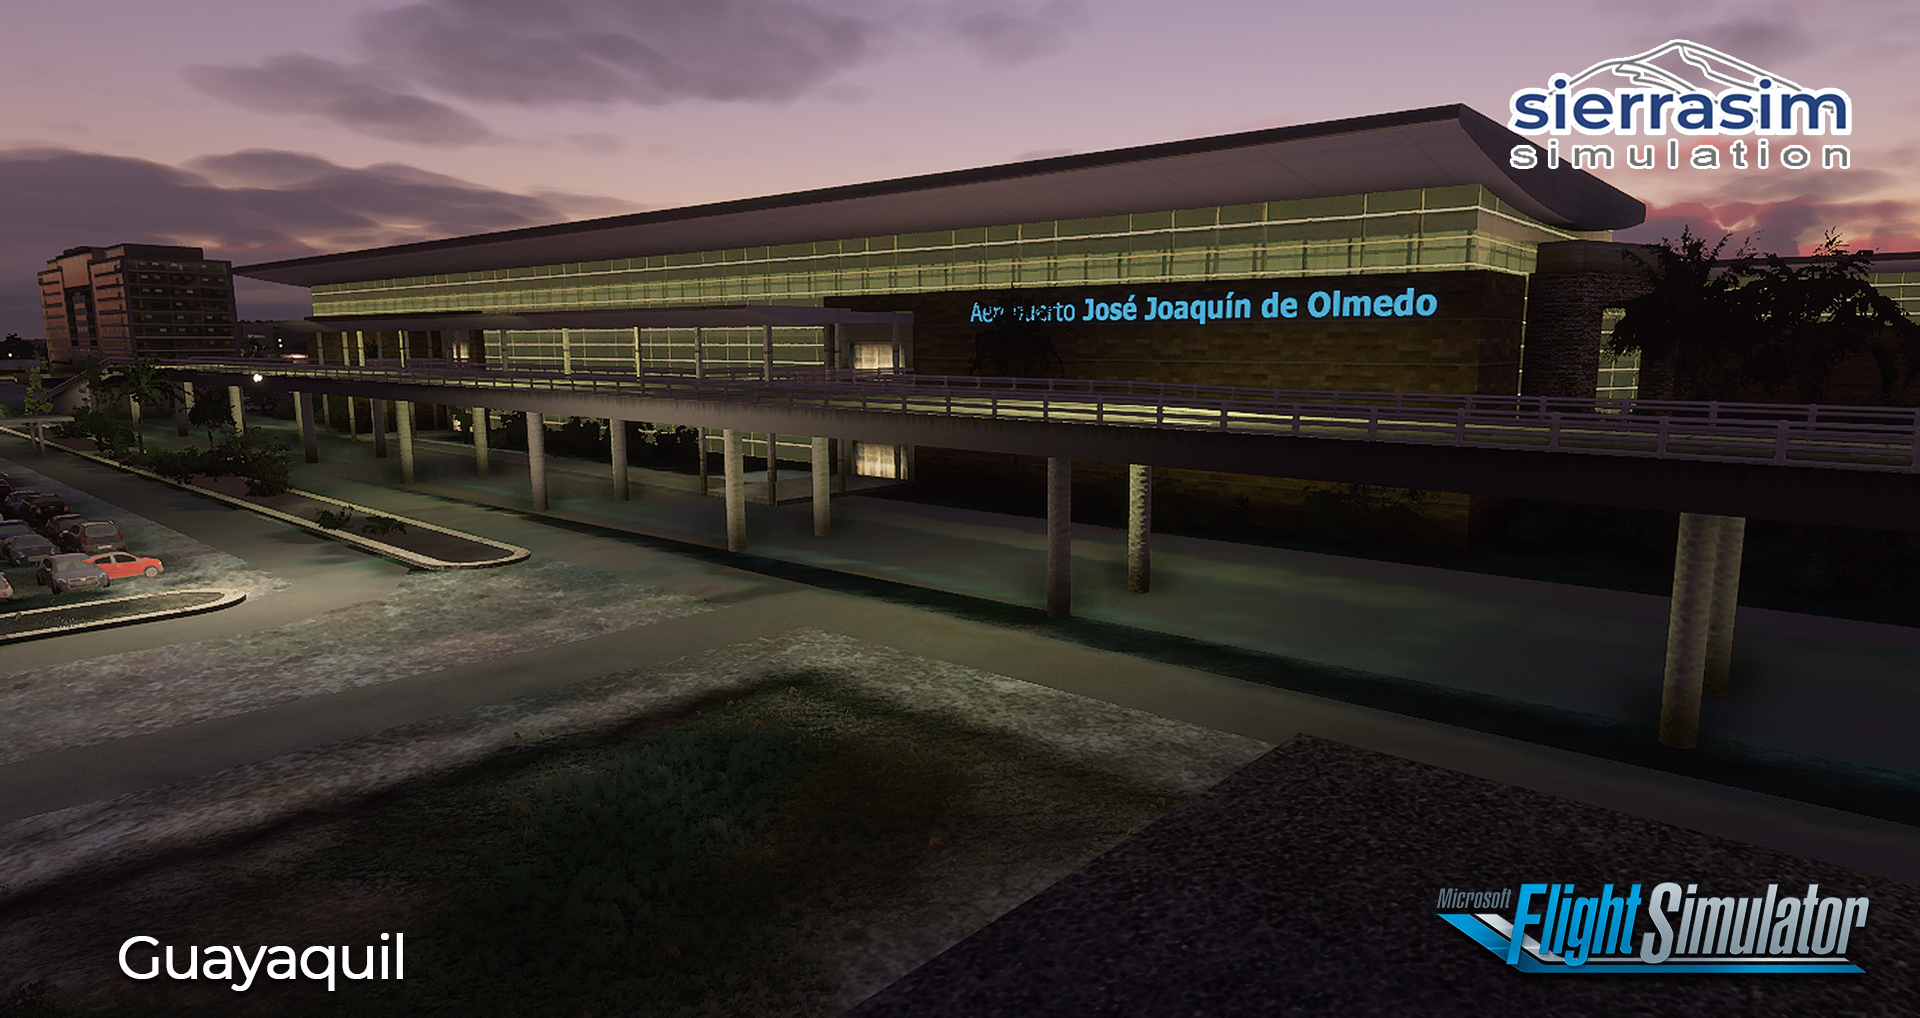 SIERRASIM SIMULATION - SEGU JOSE JOAQUIN DE OLMEDO INTERNATIONAL AIRPORT MSFS